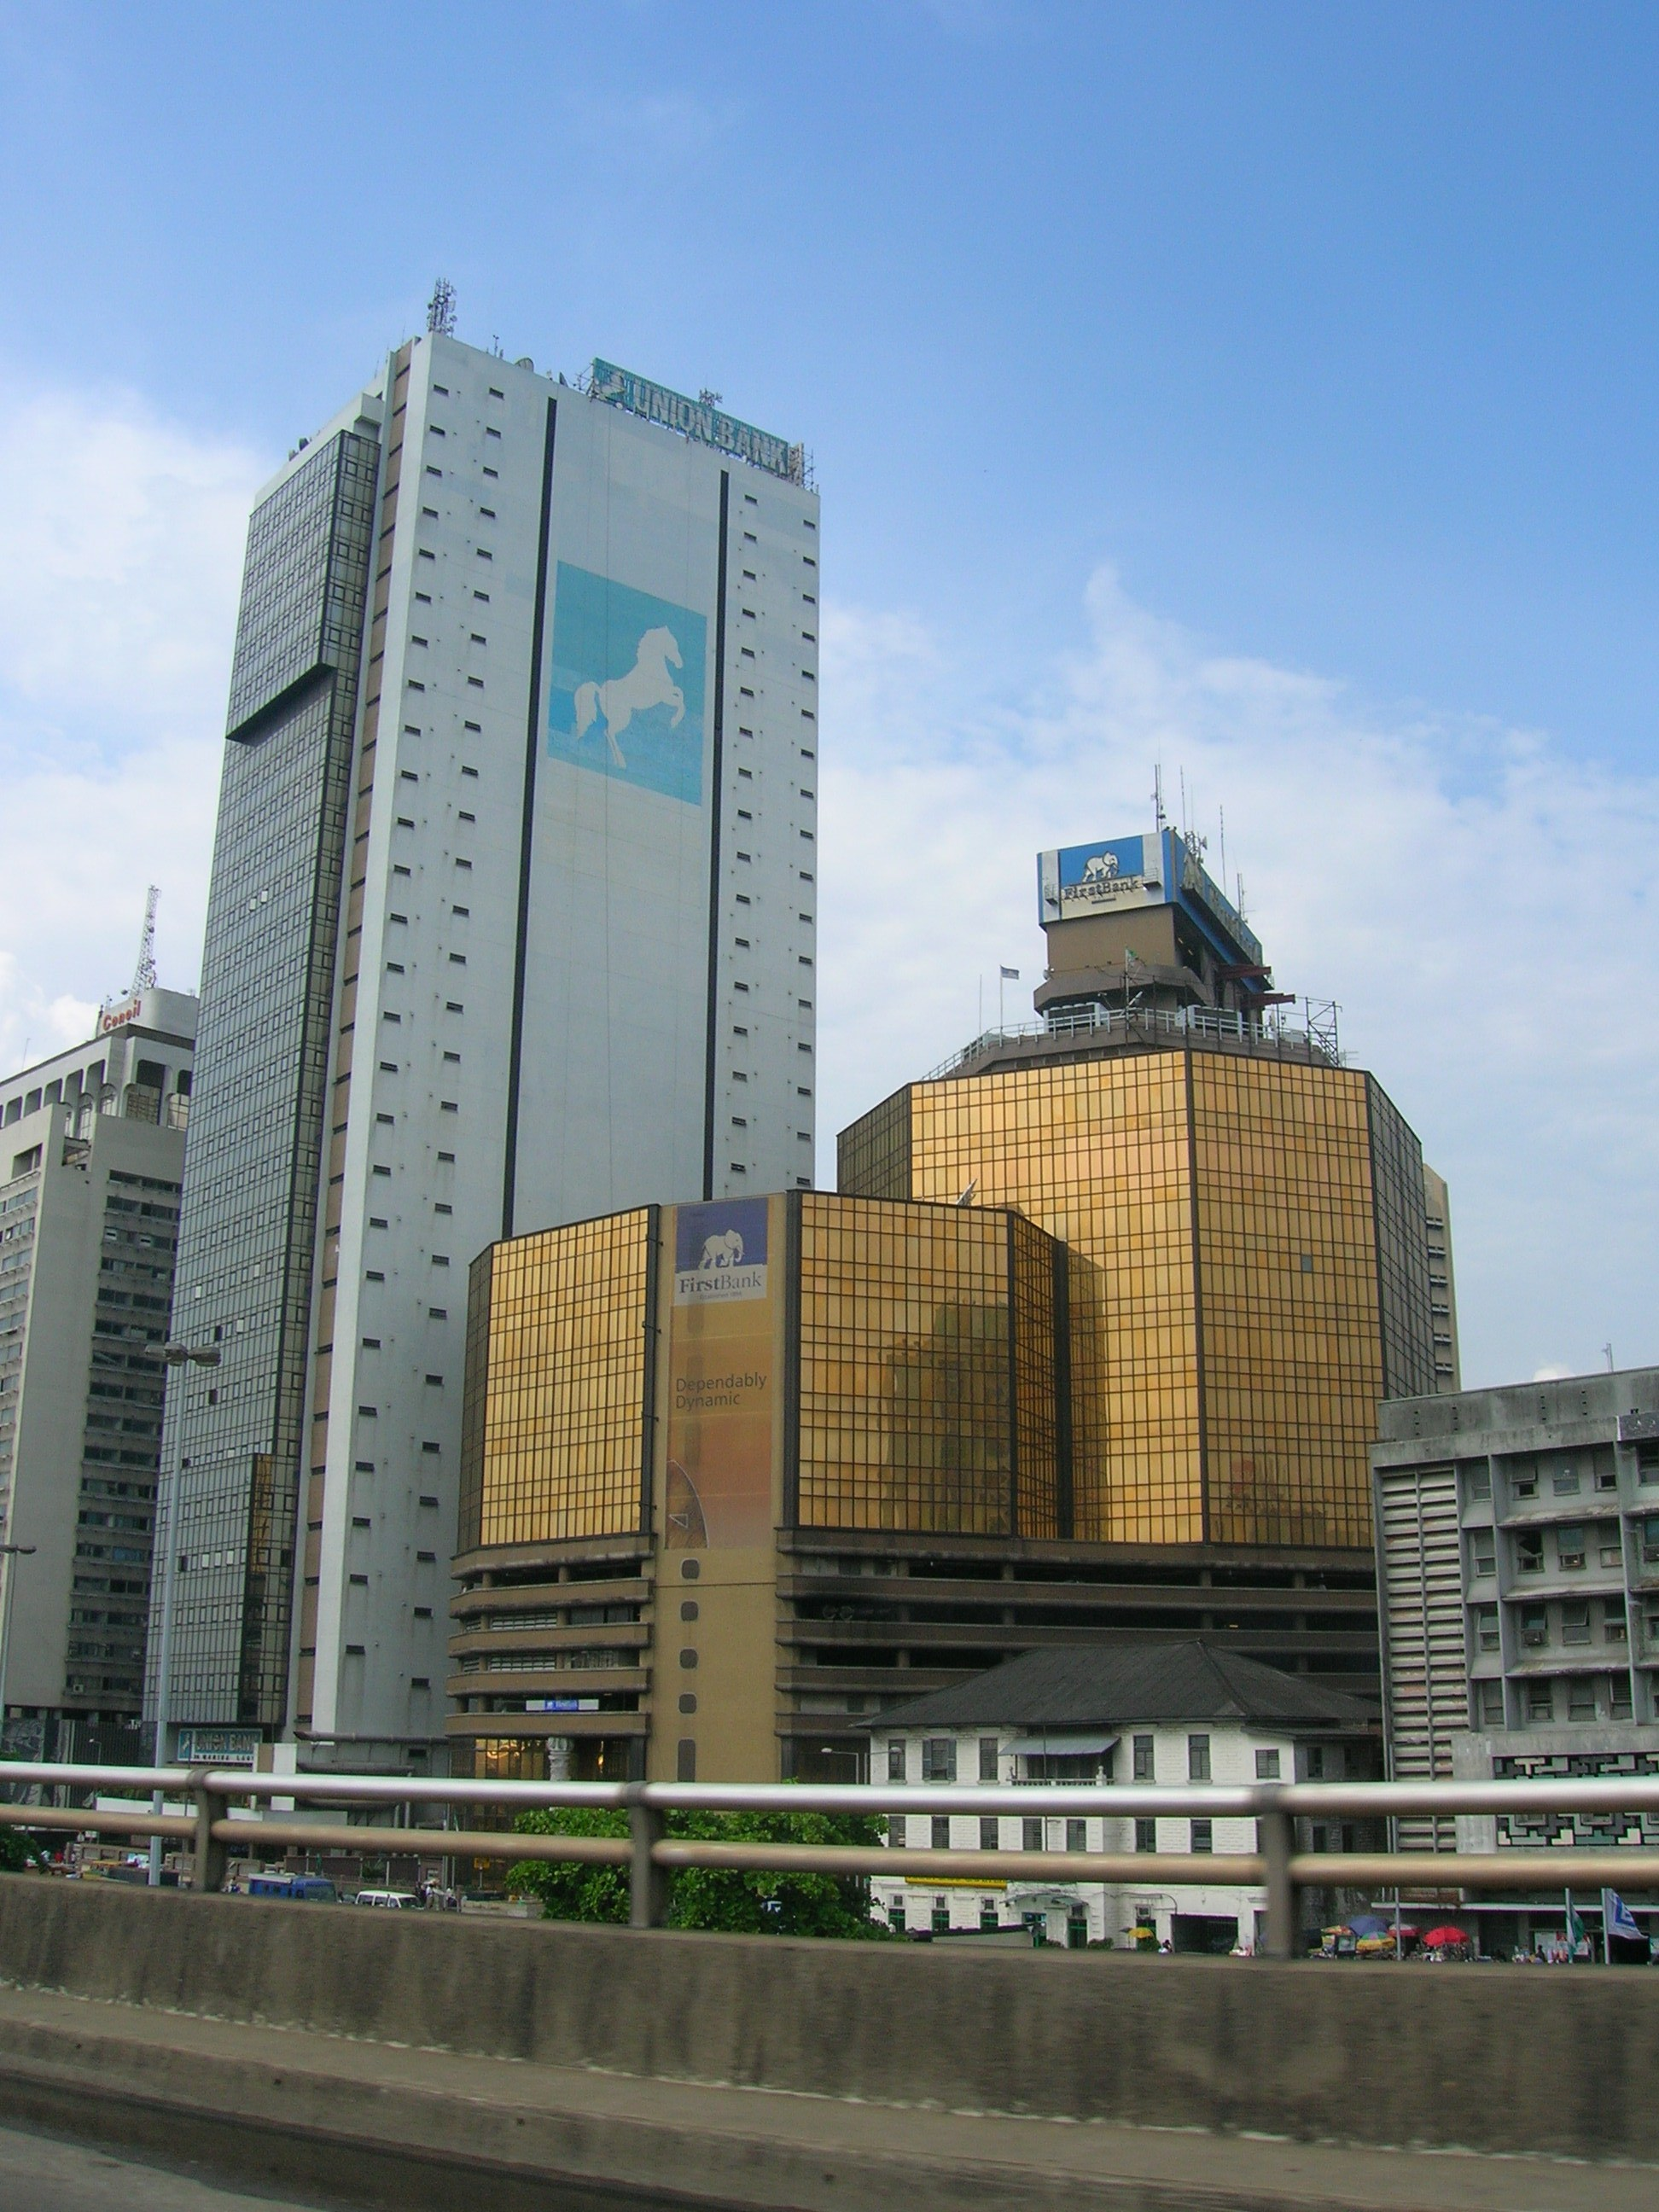 http://businessnews.com.ng/wp-content/uploads/2012/03/union-bank2.jpg